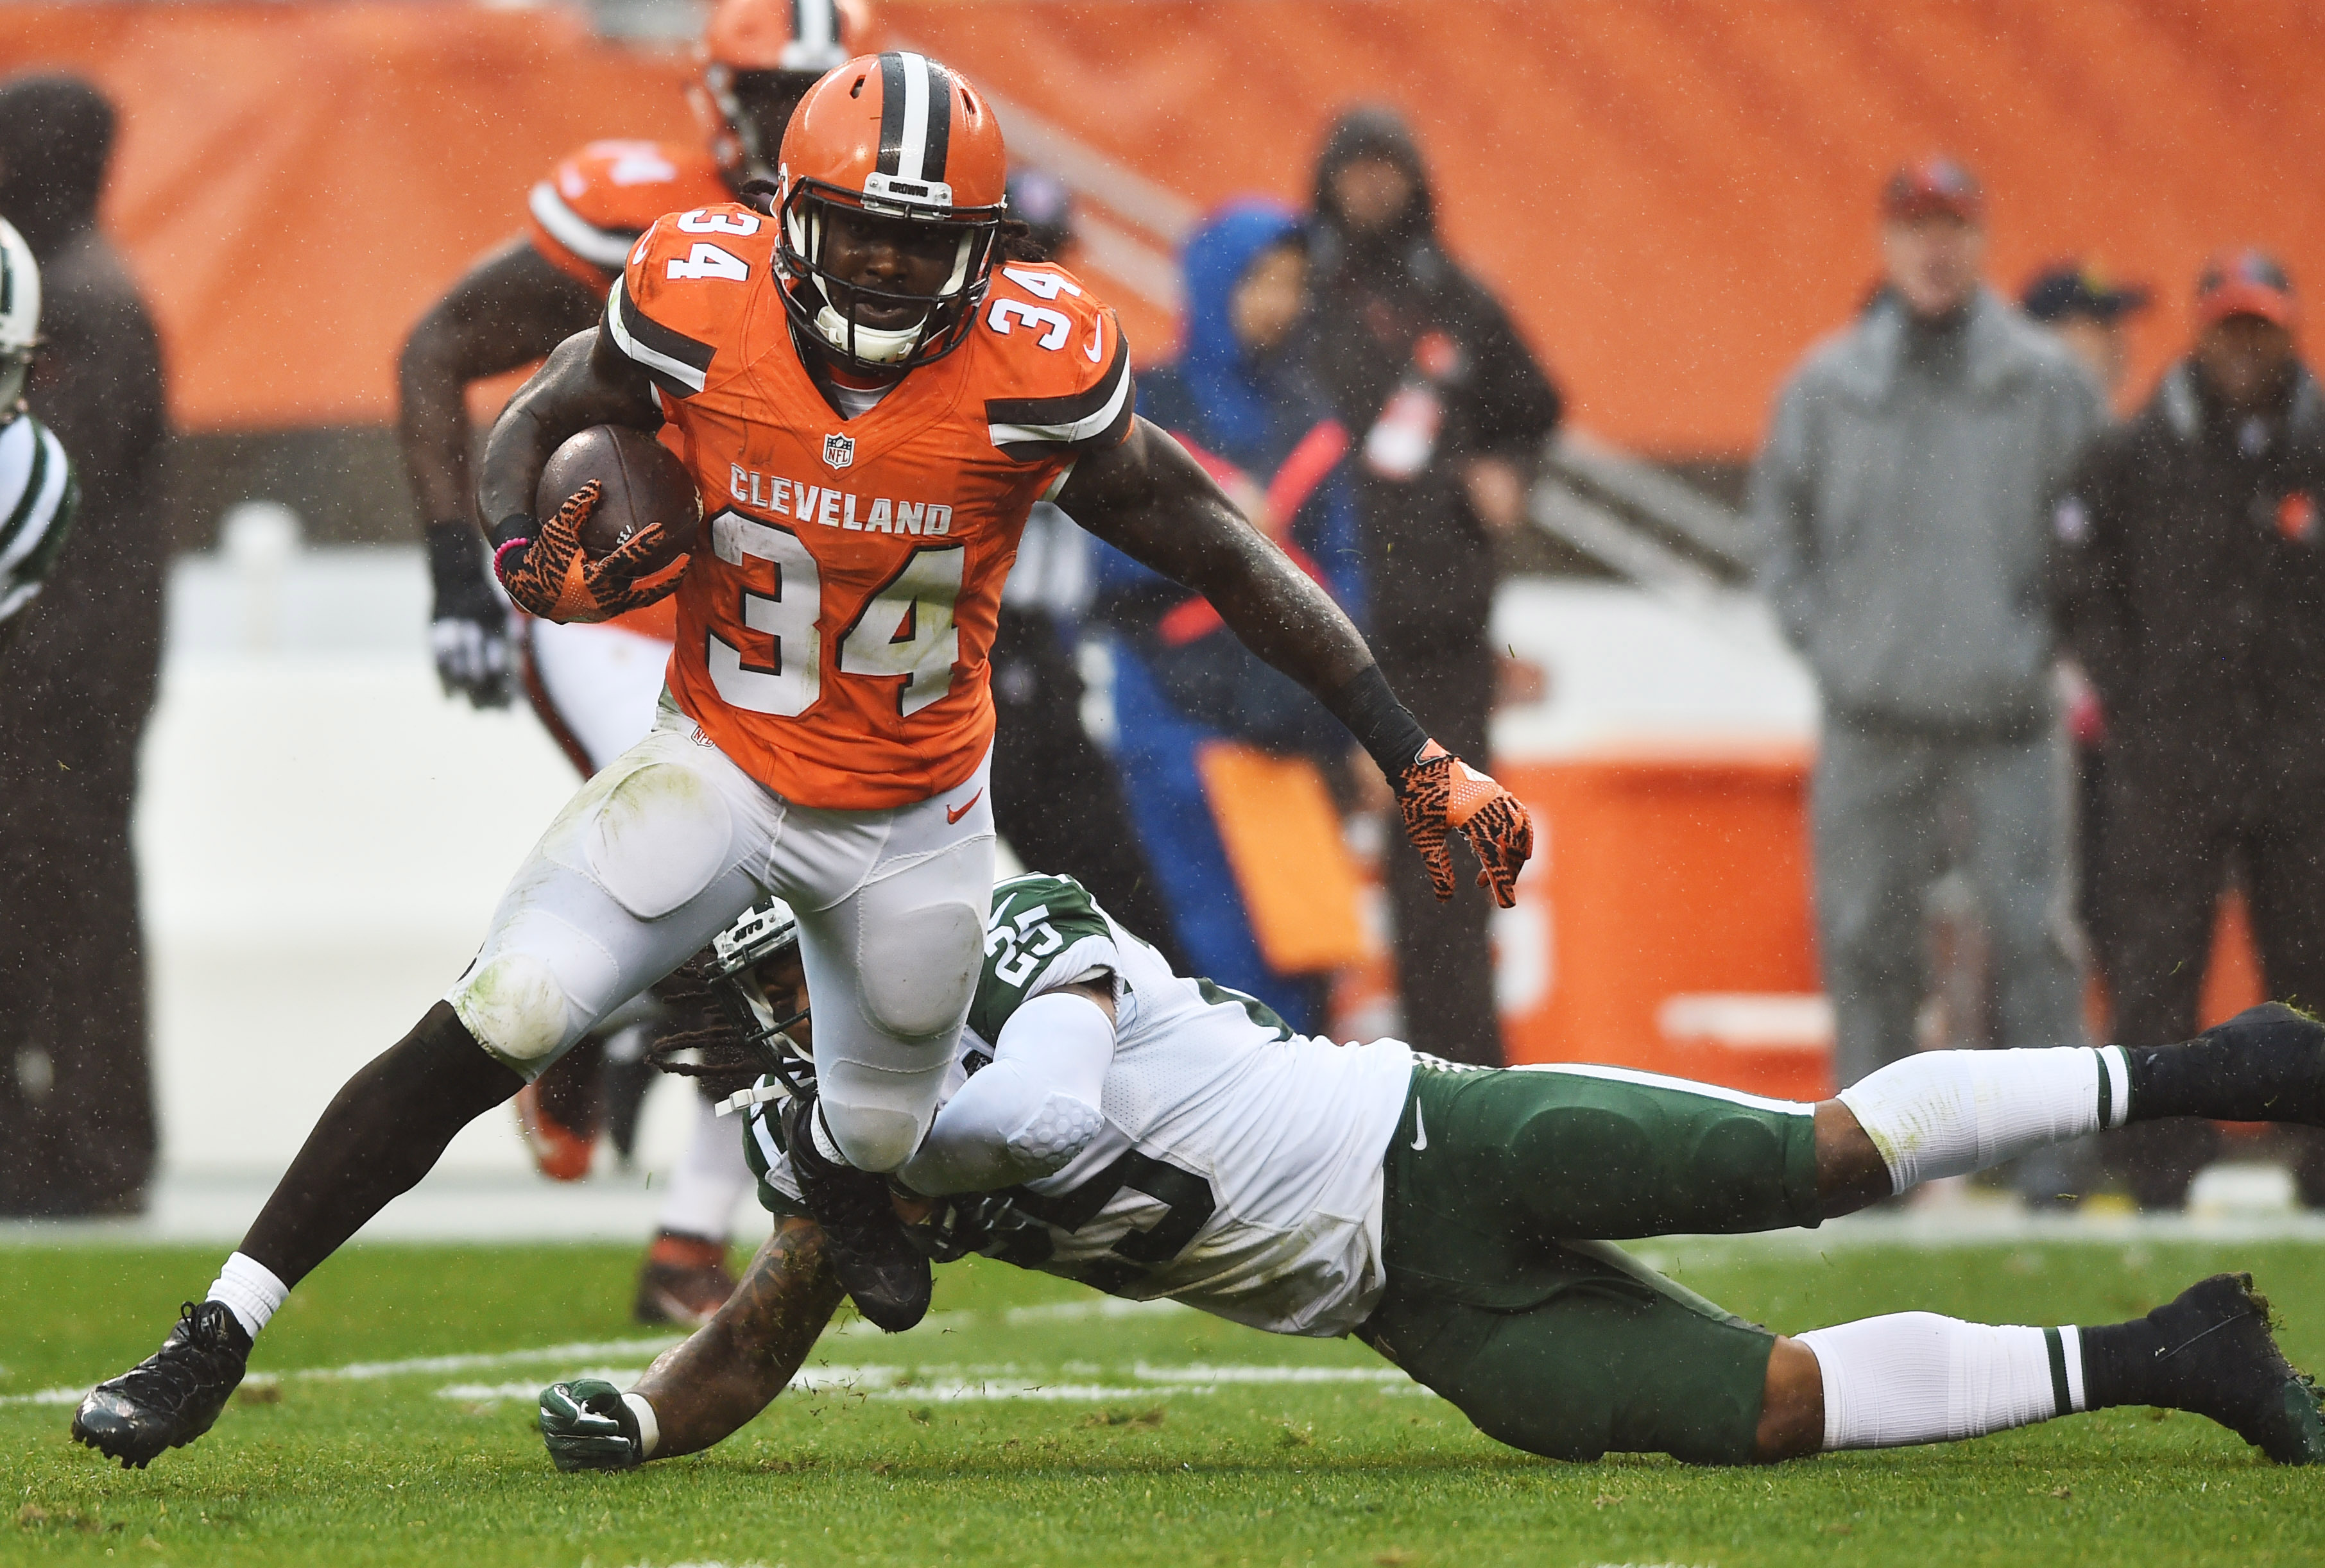 Cleveland Browns: Waiting on Isaiah Crowell to sign ...